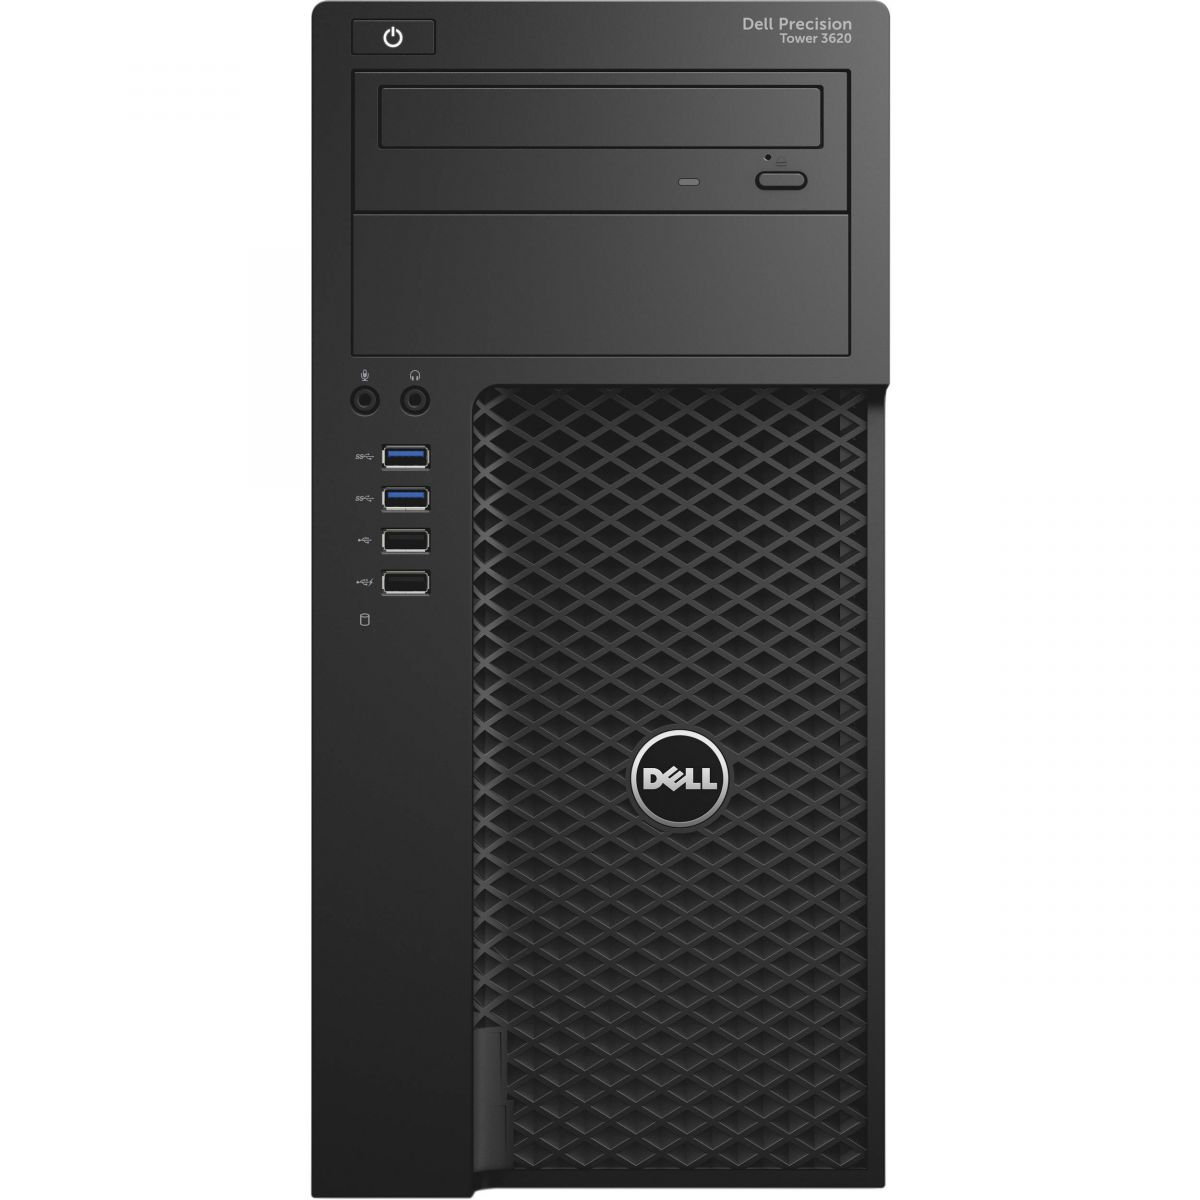 Máy trạm Dell Precision Tower 3620 XCTO BASE - E3 1225v5 42PT36D016 (Mini Tower)